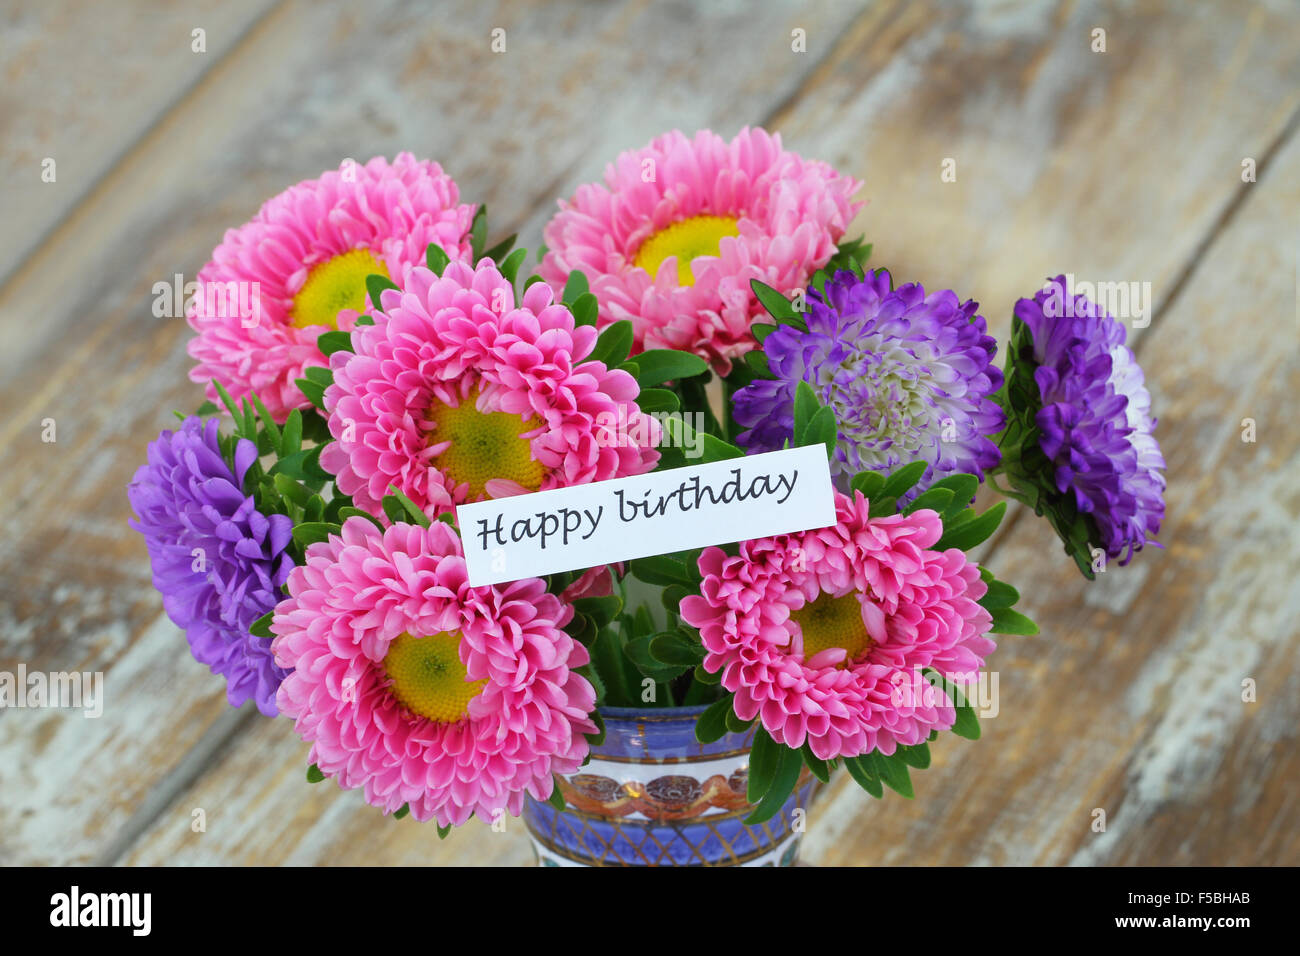 Happy birthday card with colorful aster flower bouquet on rustic happy birthday card with colorful aster flower bouquet on rustic wooden surface izmirmasajfo